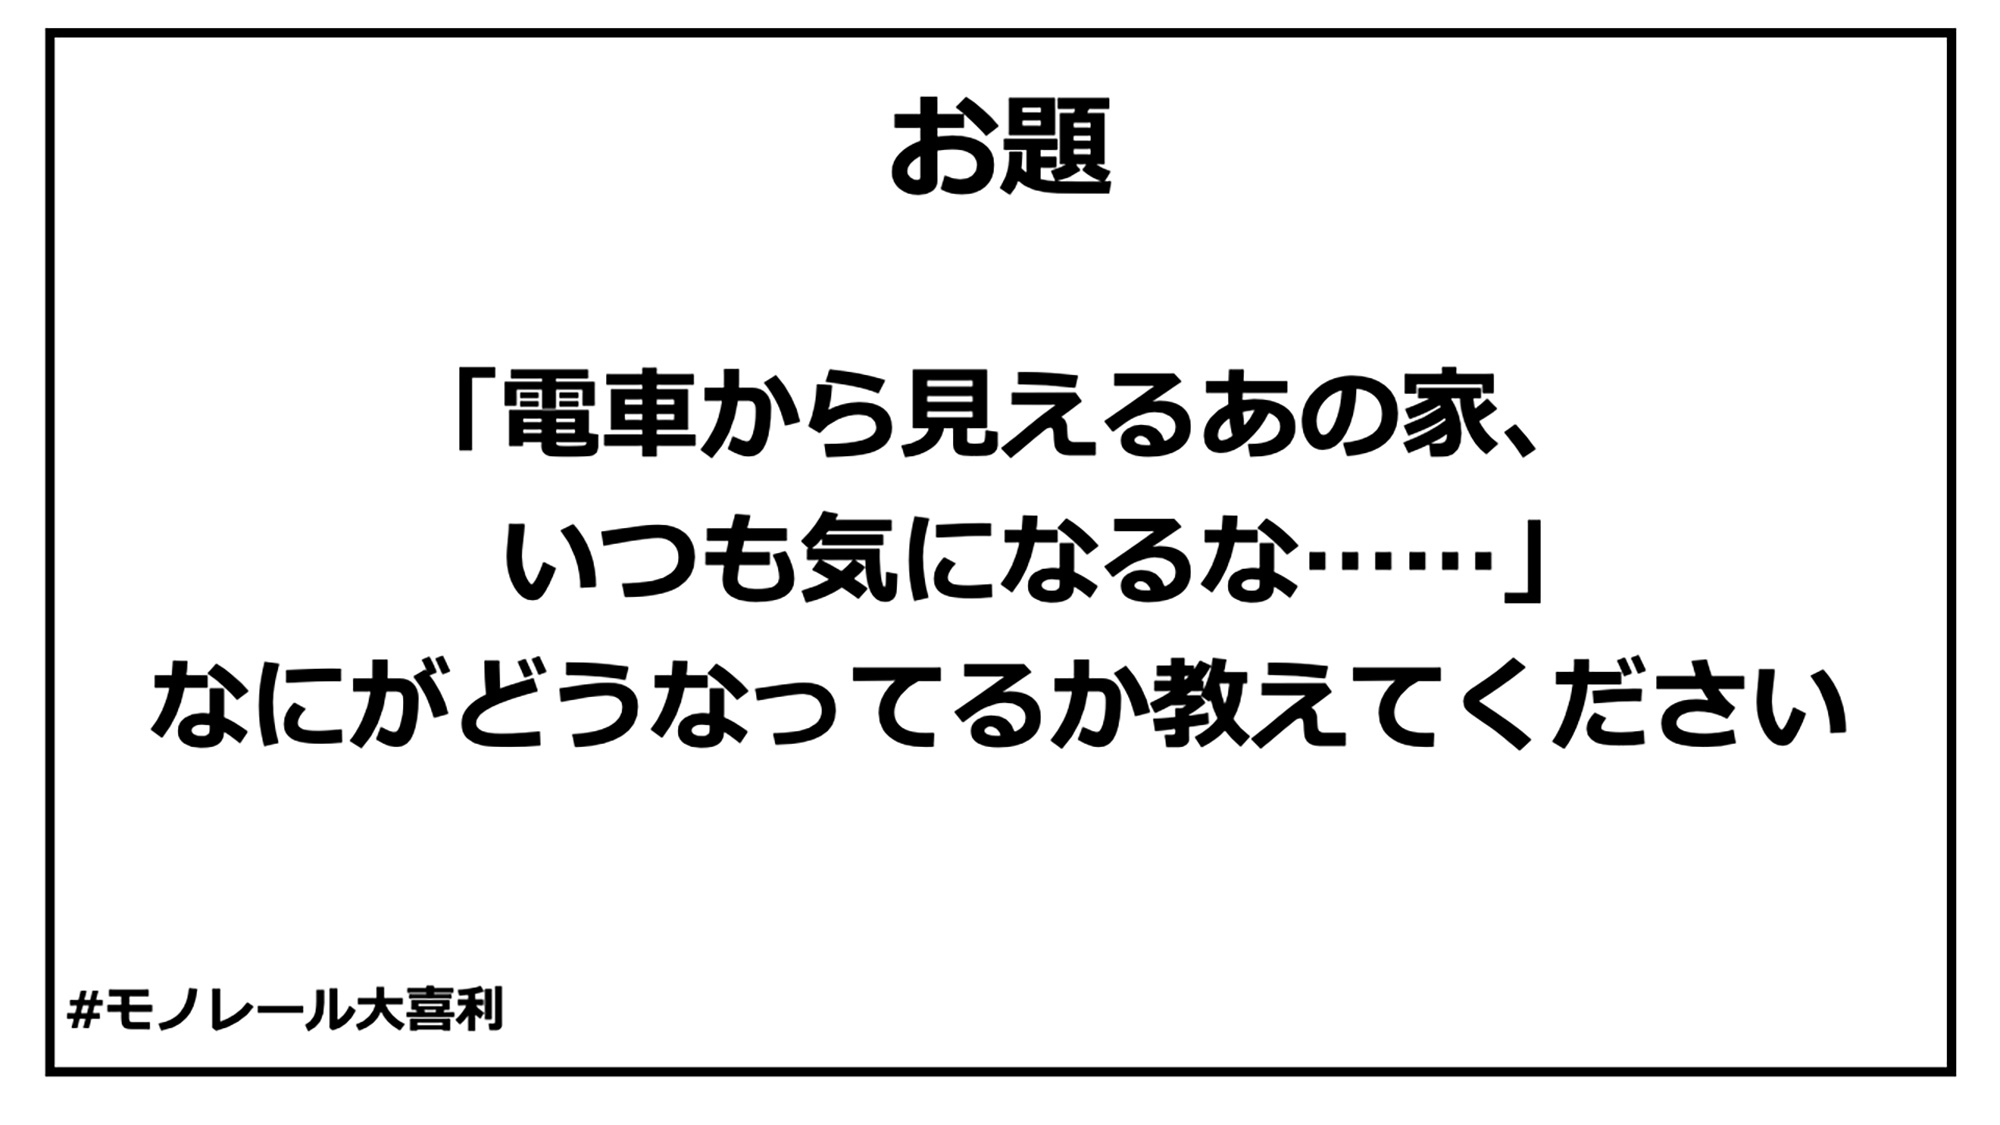 ogiri_answer_26_12.jpg